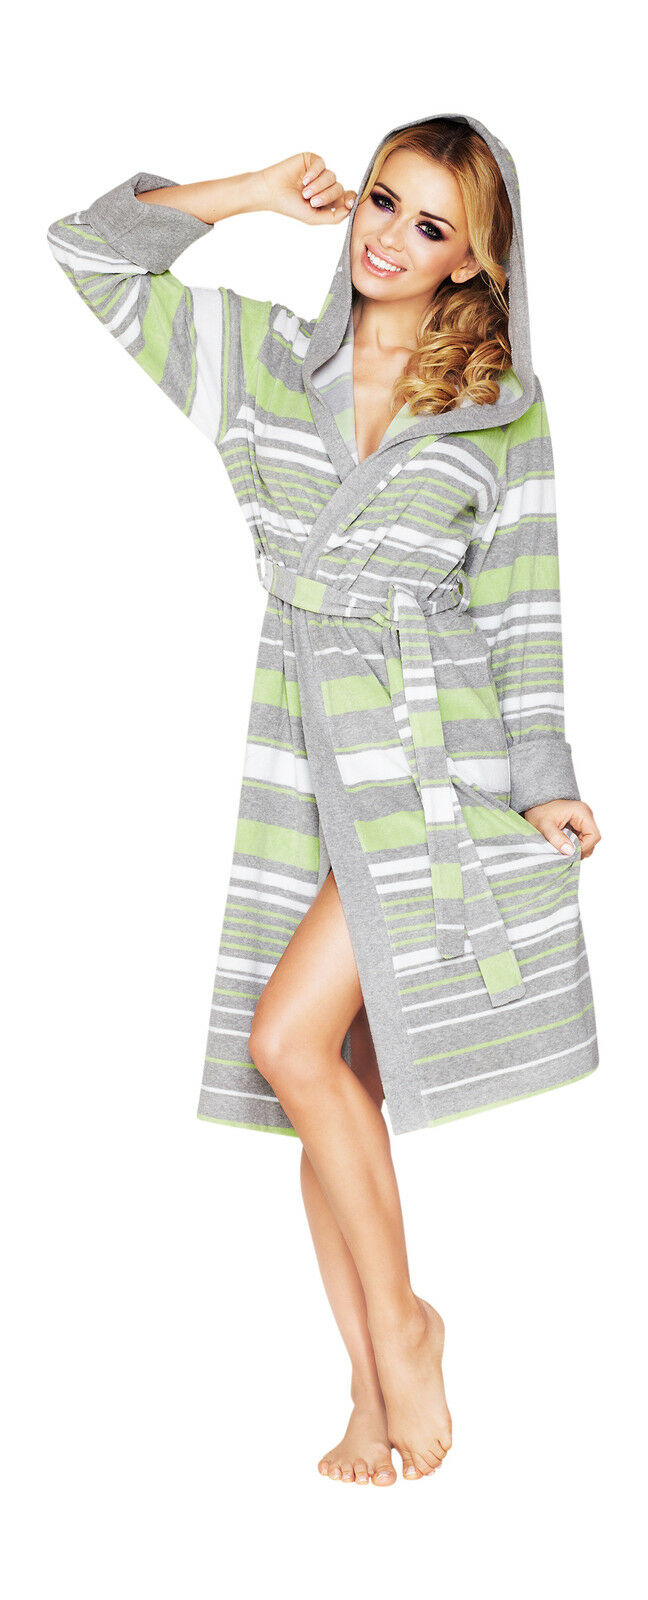 Women s Luxury SOFT Cotton Bath Robe Housecoat Dressing Gown Bathrobe with  Hood a030620393af